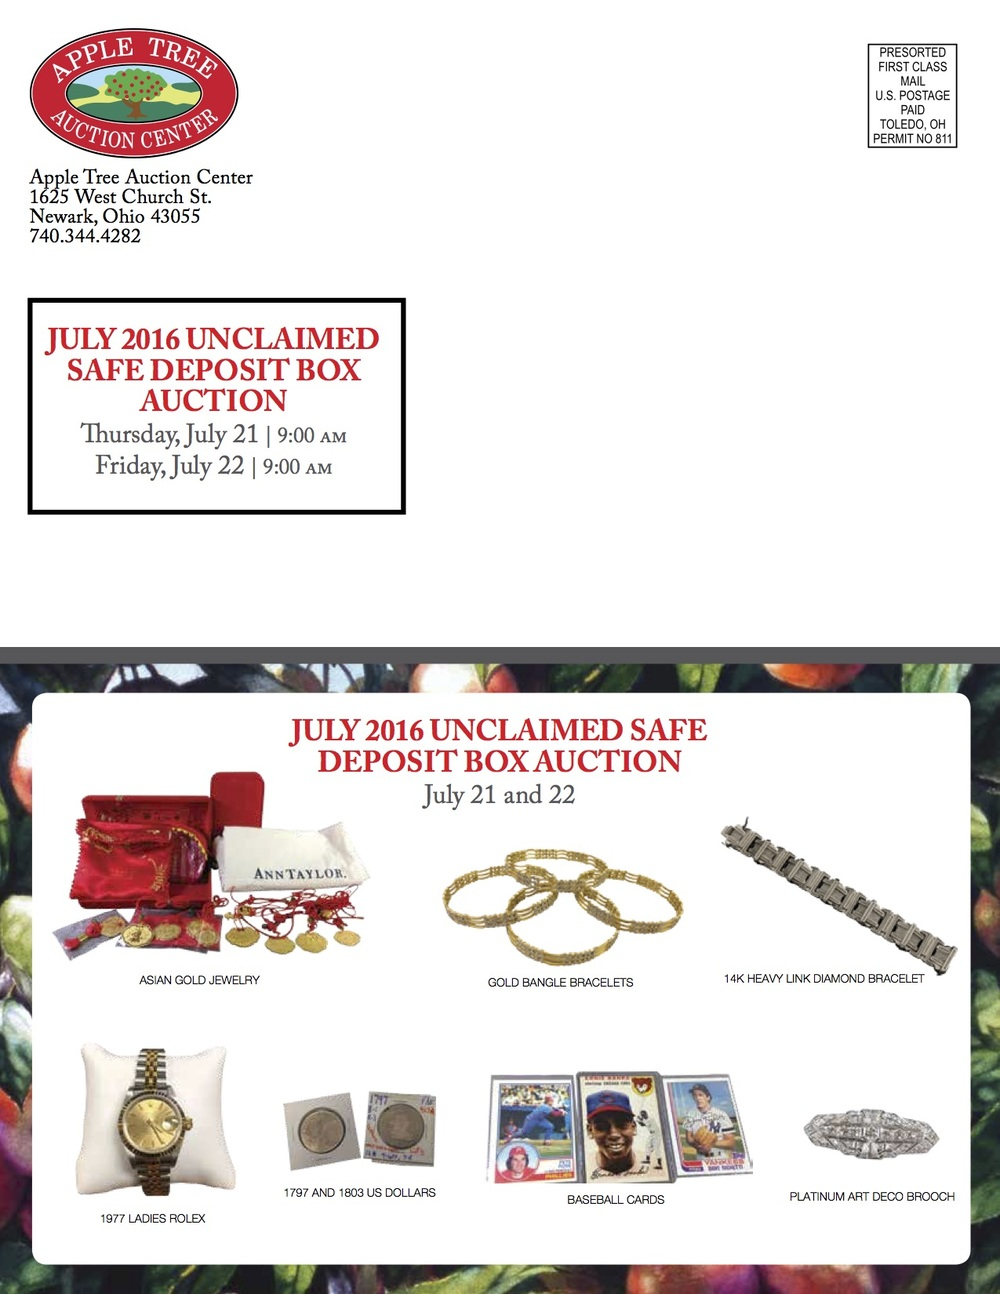 July Safe Deposit Box Flyer 16 low res pg 4.jpg